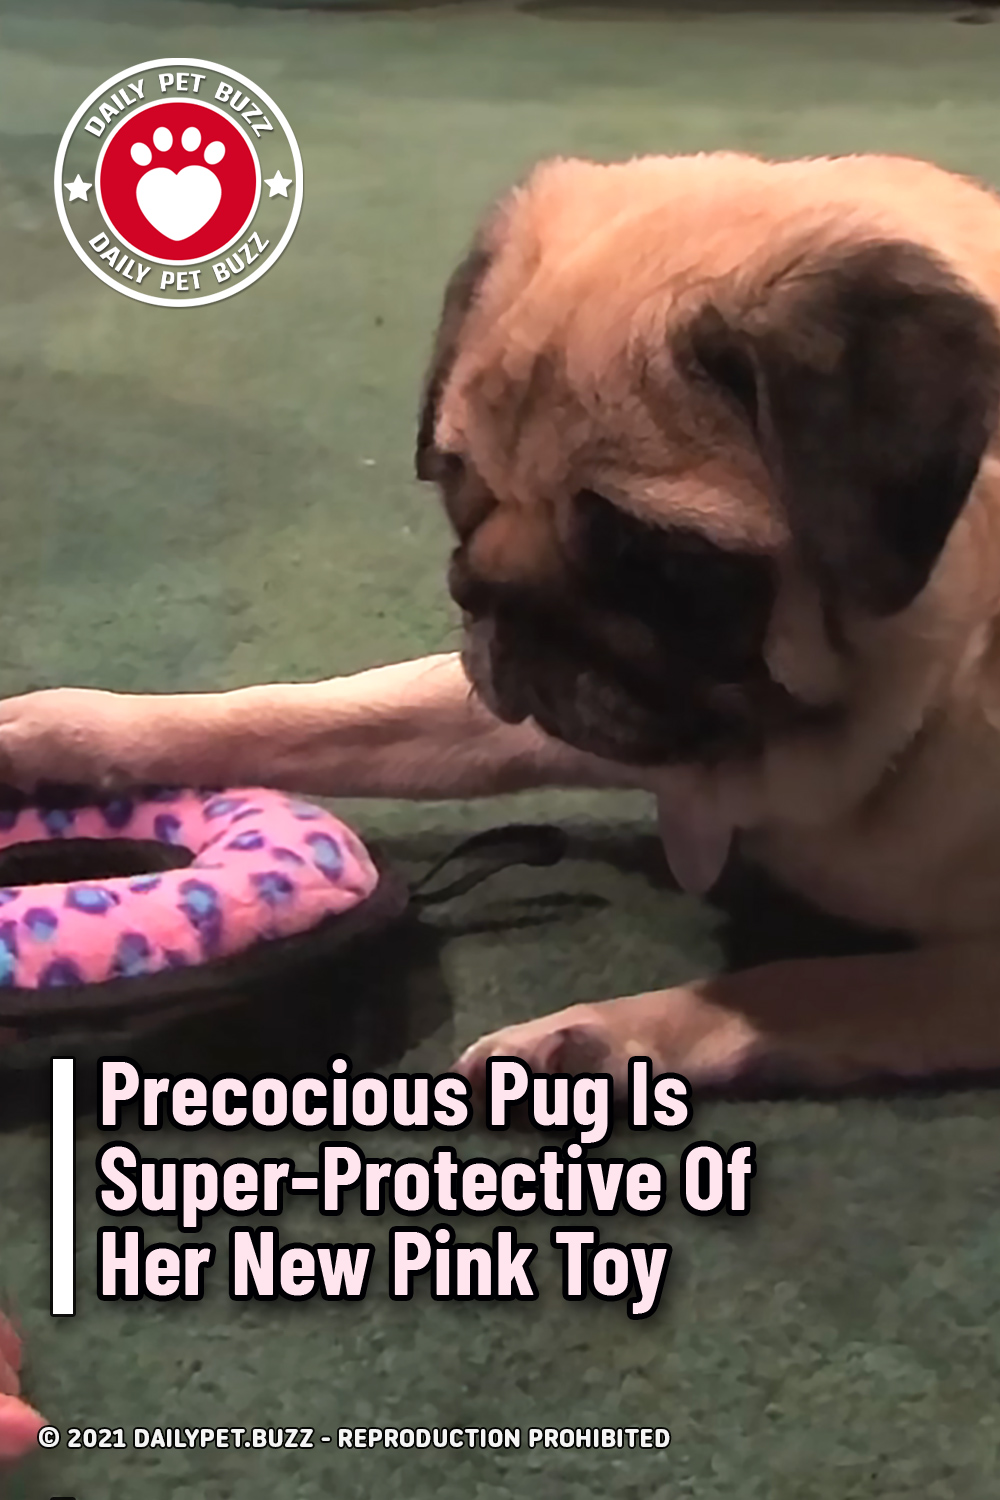 Precocious Pug Is Super-Protective Of Her New Pink Toy